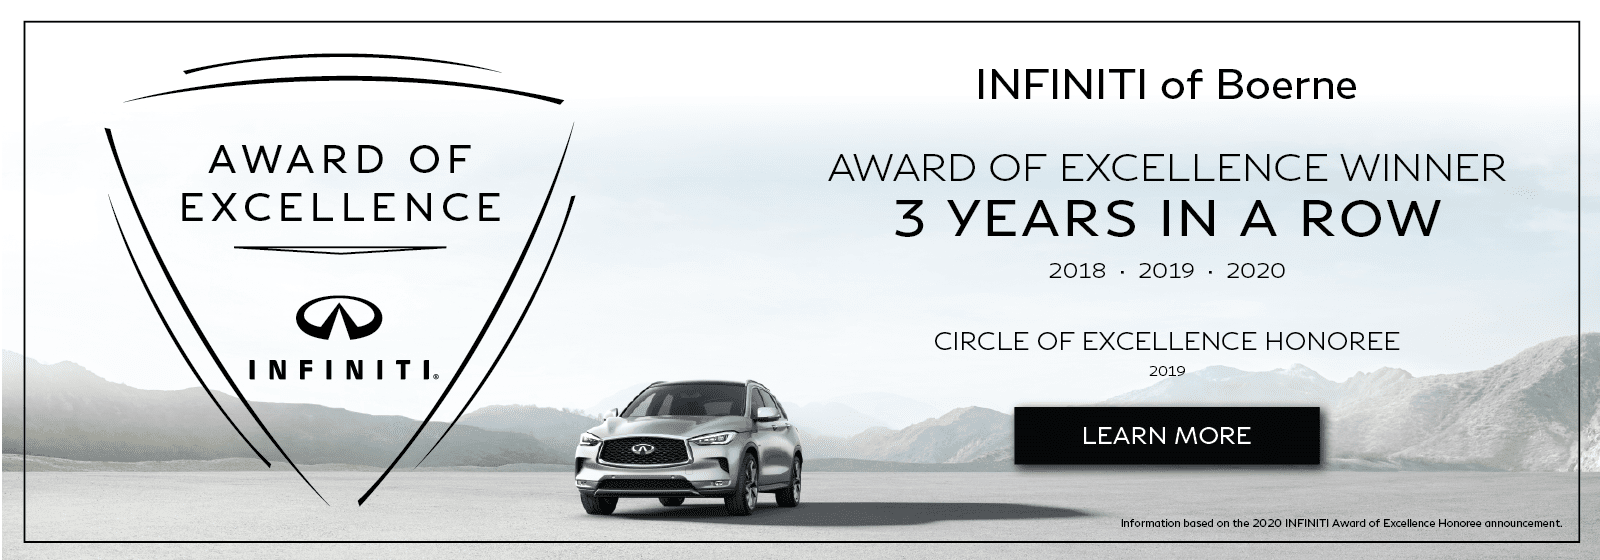 INFINITI of Boerne is a 3-time INFINITI Award of Excellence winner and Circle of Excellence honoree. Based on information from the 2019 INFINITI Award of Excellence honoree announcement.